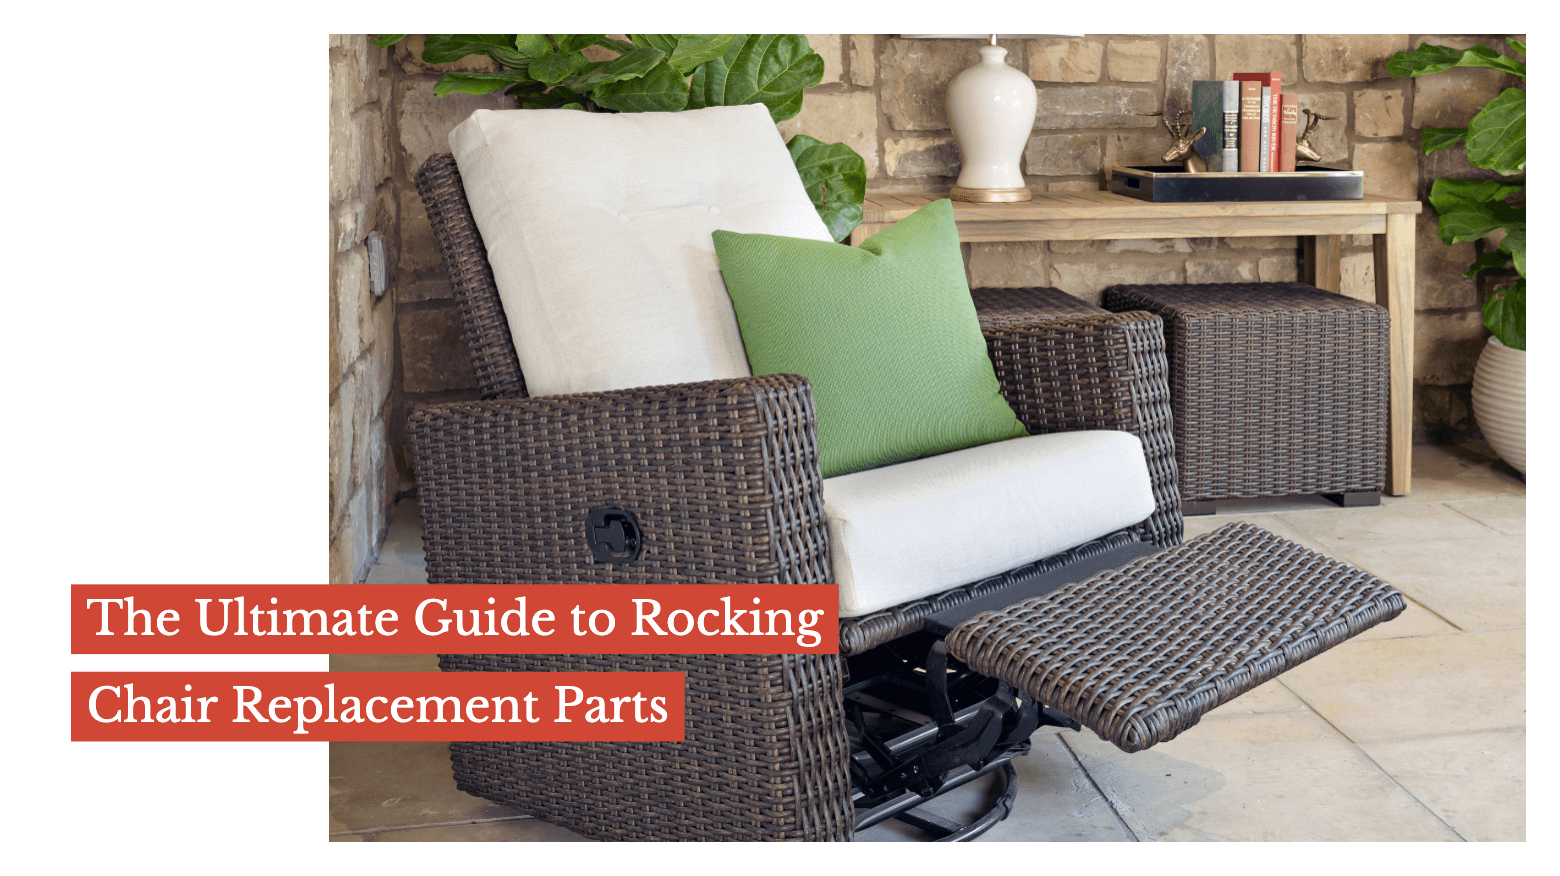 The Ultimate Guide to Rocking Chair Replacement Parts